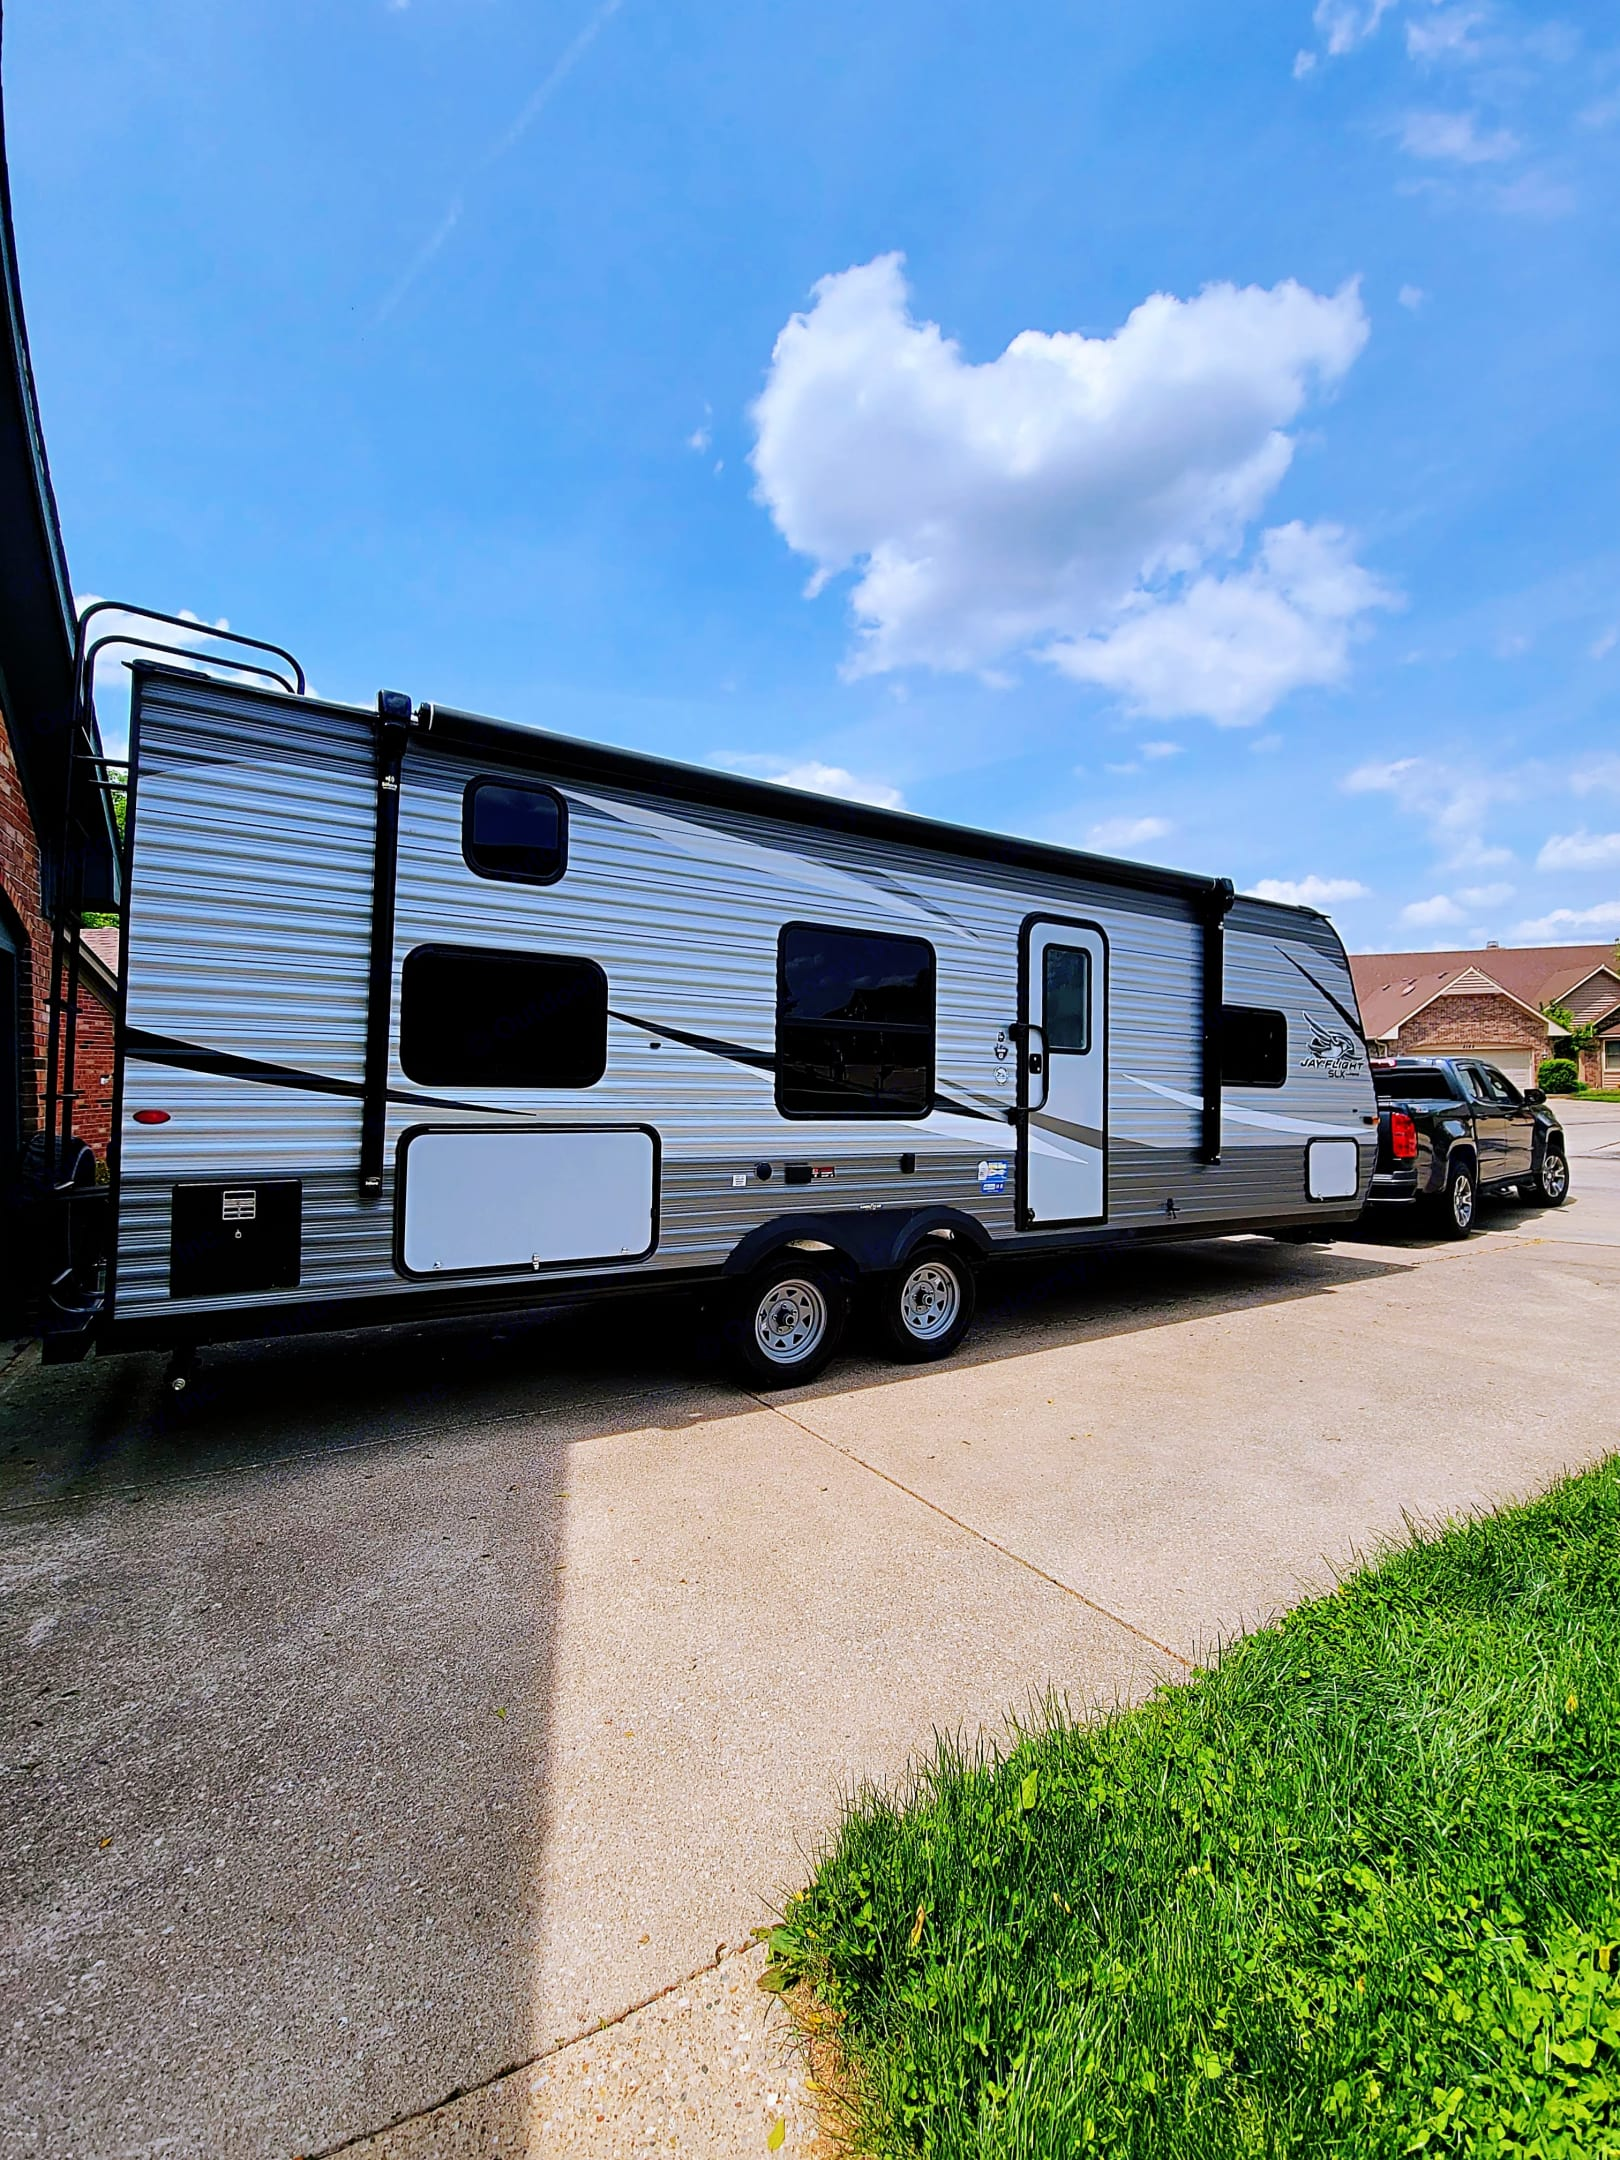 With a 16' awning, Bluetooth speakers, LED lighting, many large windows, and the entry door, this is the business end of the travel trailer.  . Jayco Other 2021